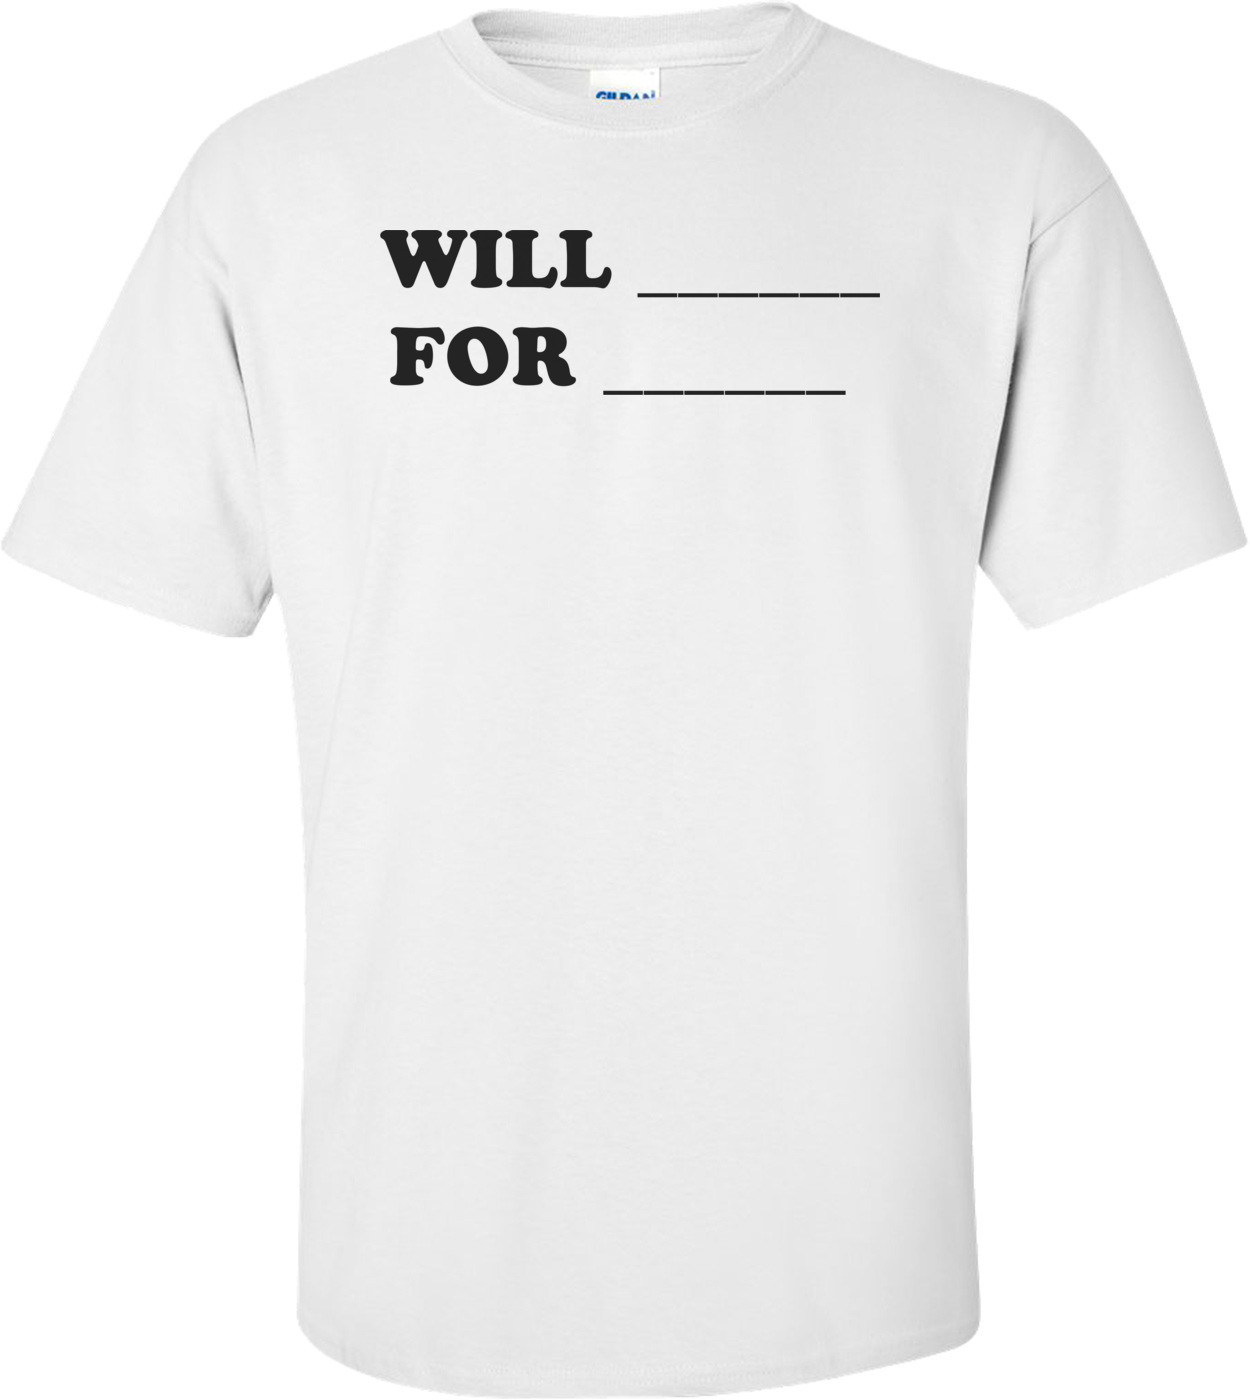 WILL ______ FOR ______  Shirt